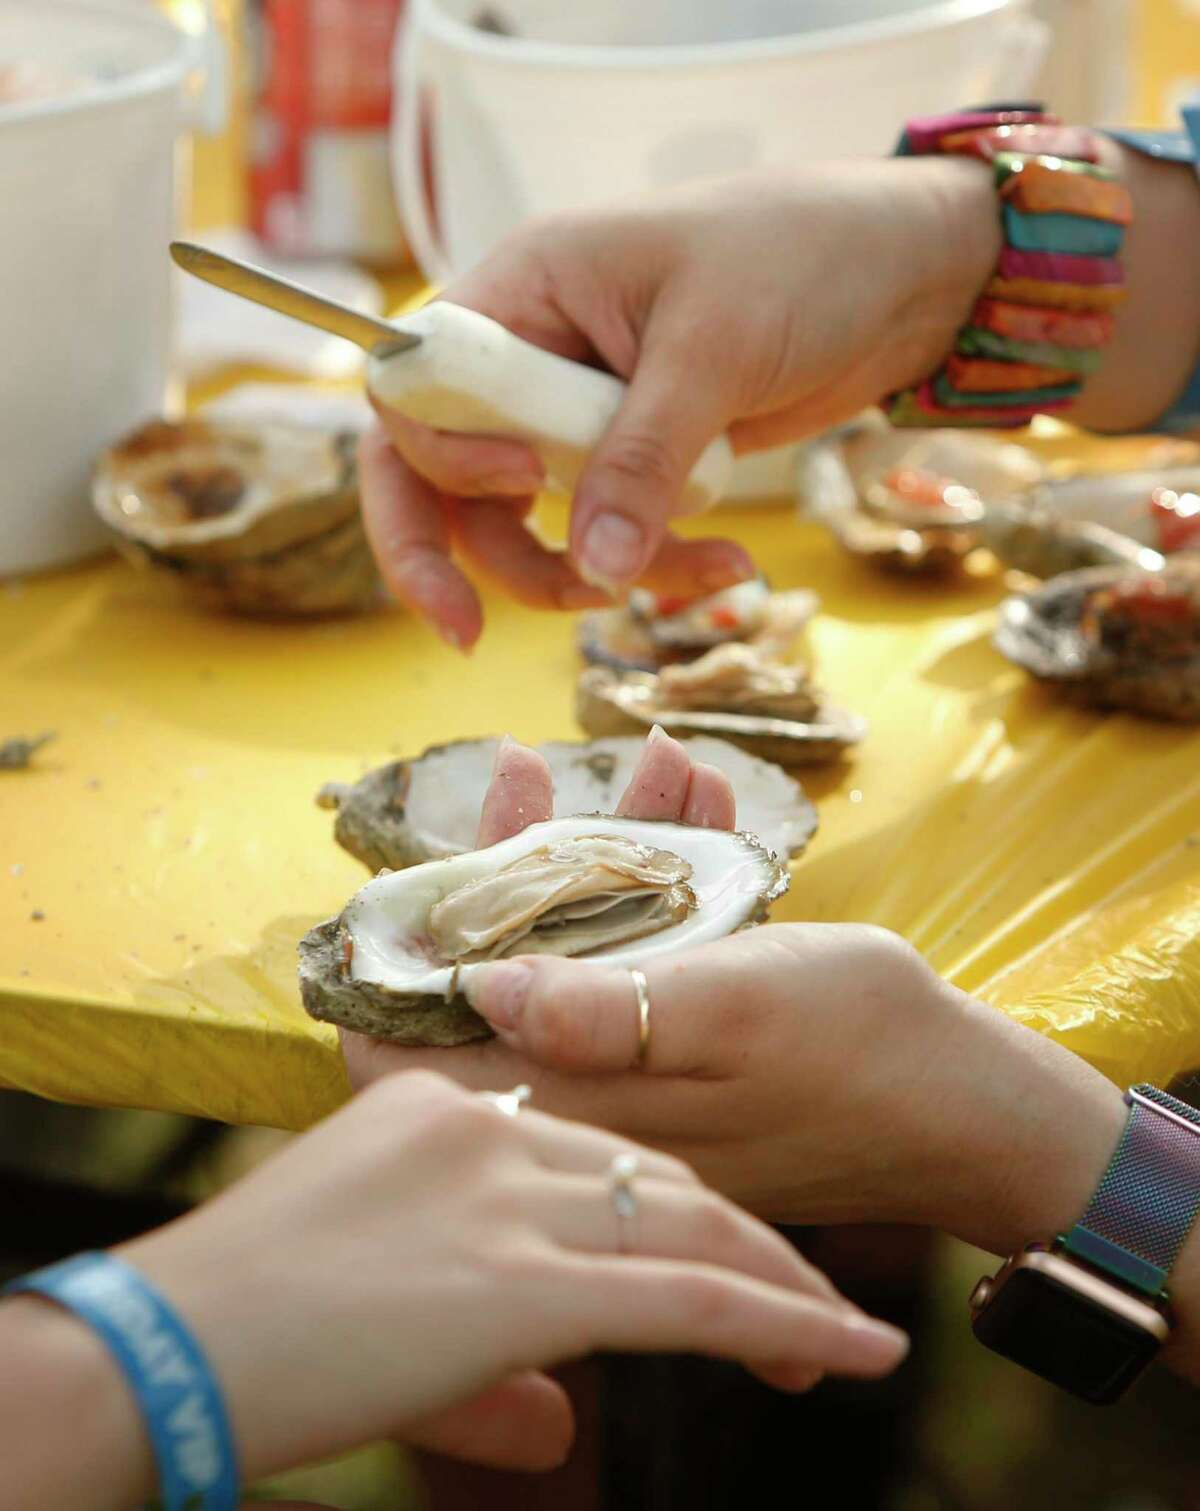 Volunteers open oysters during the 2019 Fiesta Oyster Bake